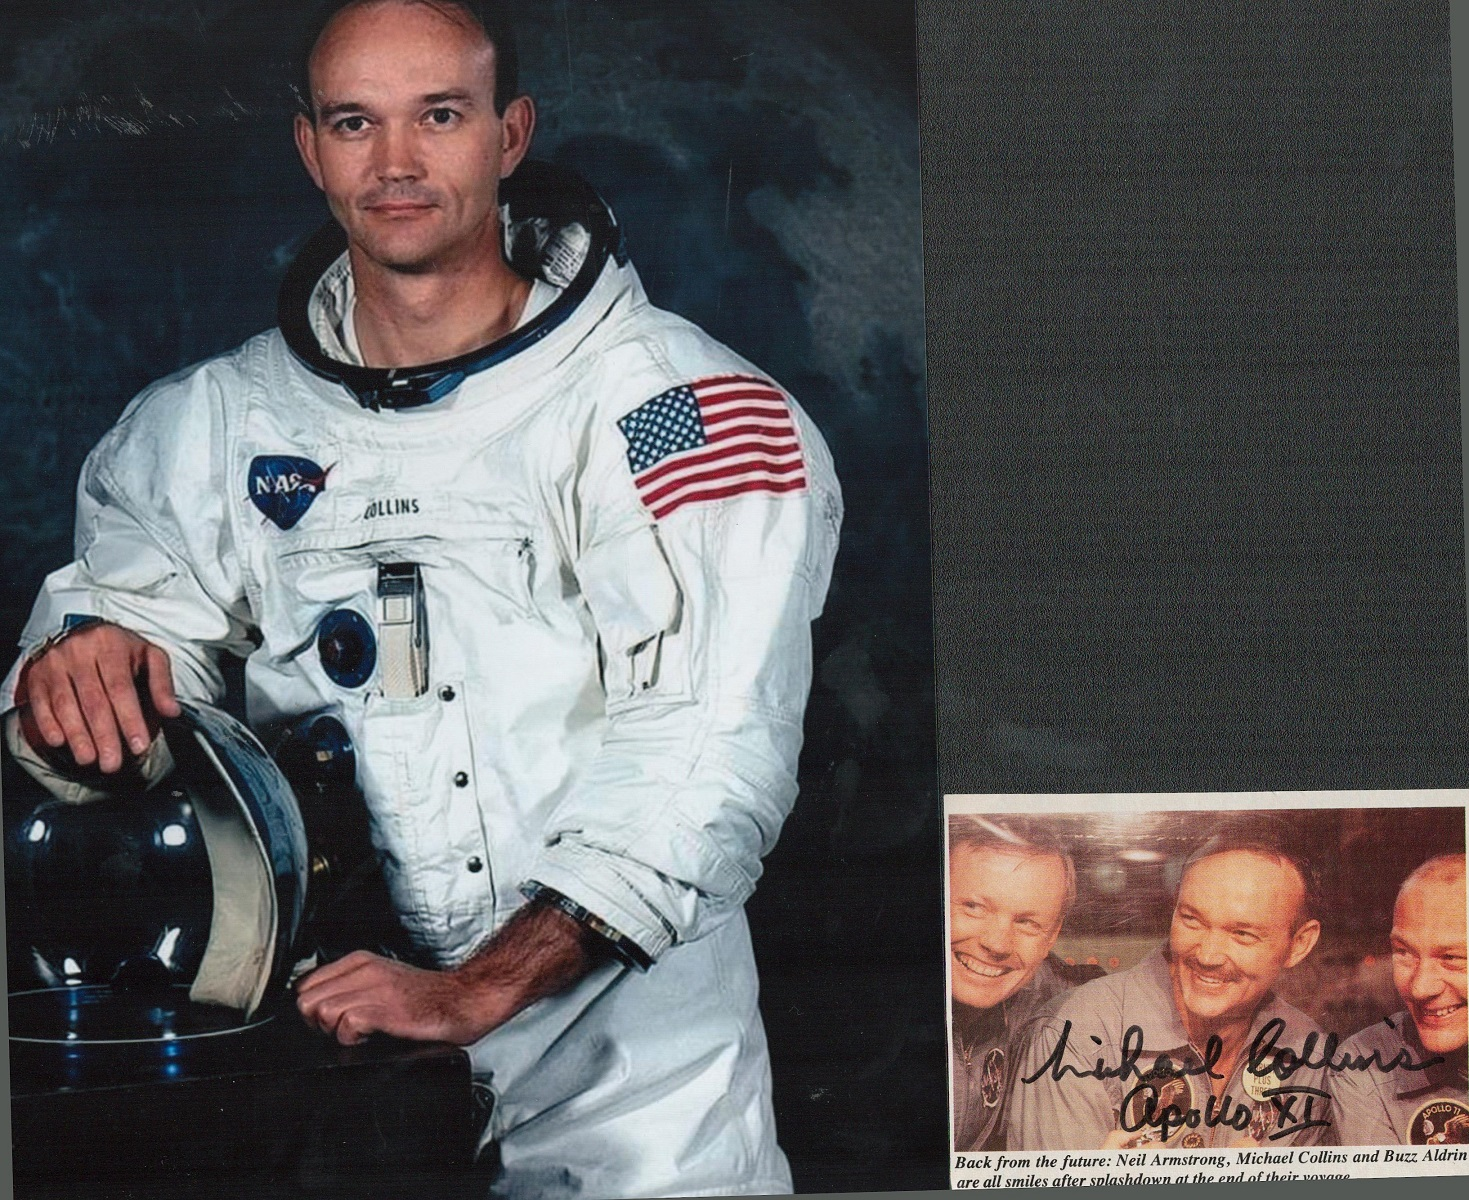 Michael Collins signed small colour magazine photo, along with 10x8 colour unsigned spacesuit photo.